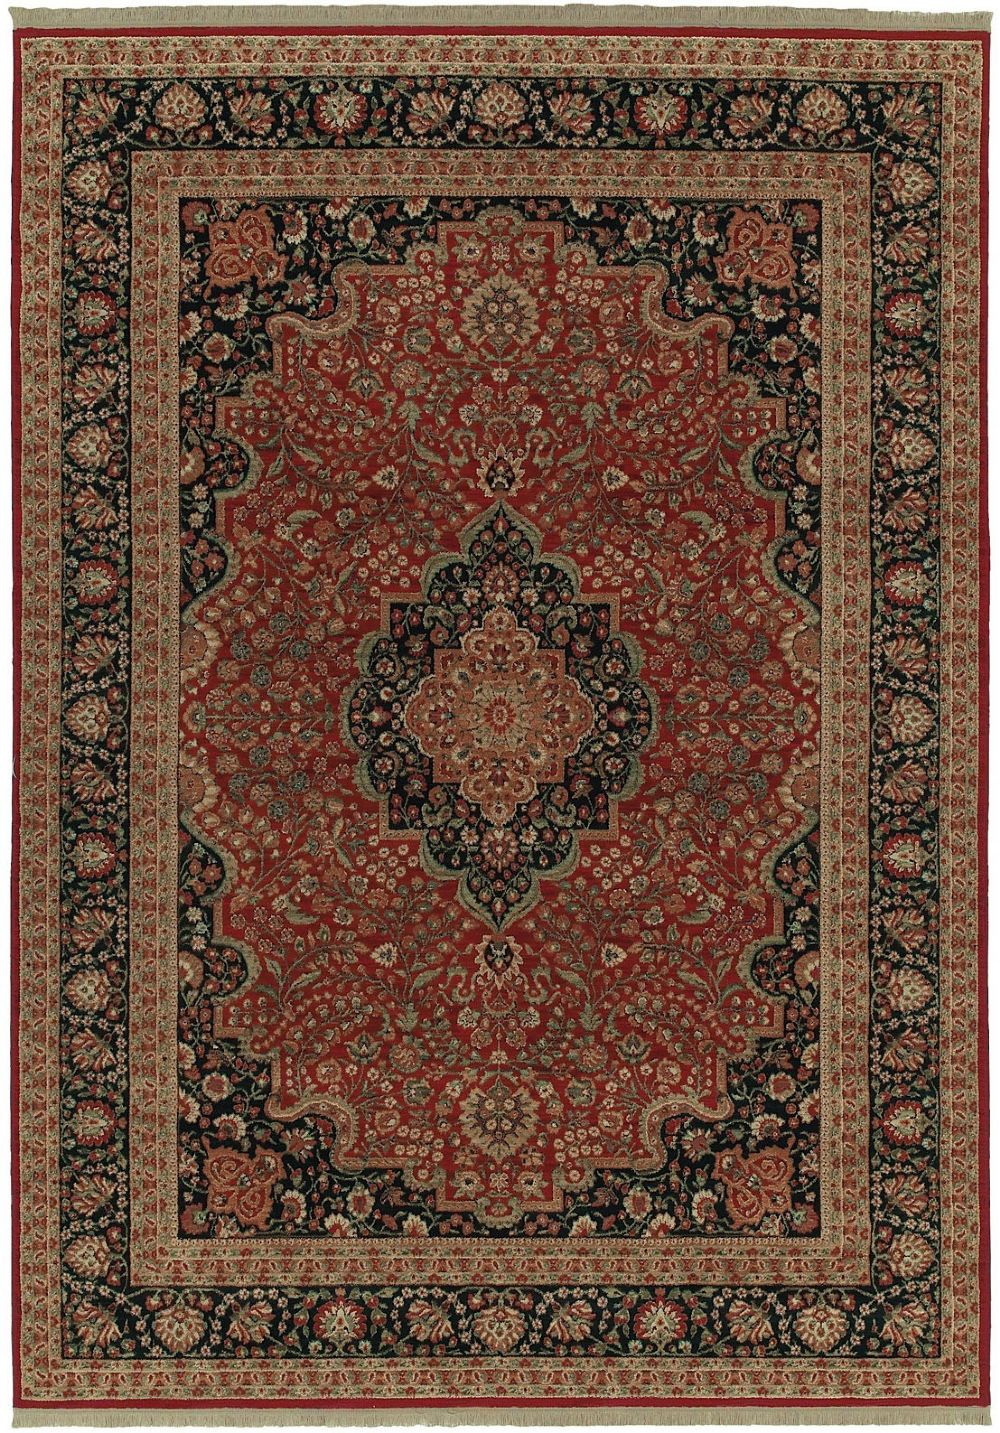 shaw stonegate european area rug collection